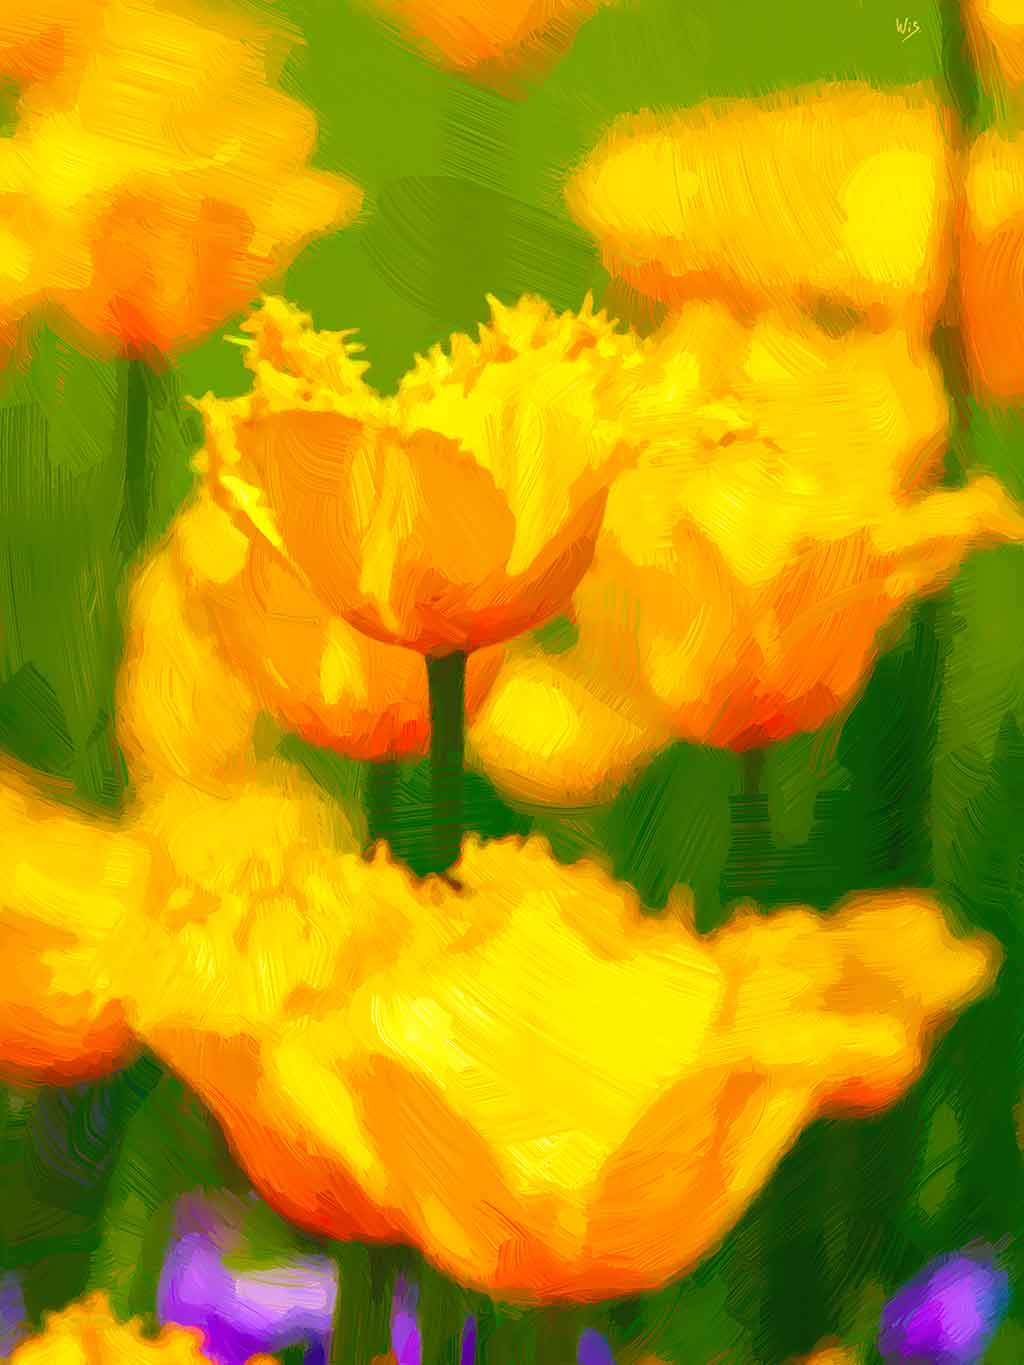 Tulips Yellow in digital oil paintings on Art Canvas Print created by Wieslaw Sadurski